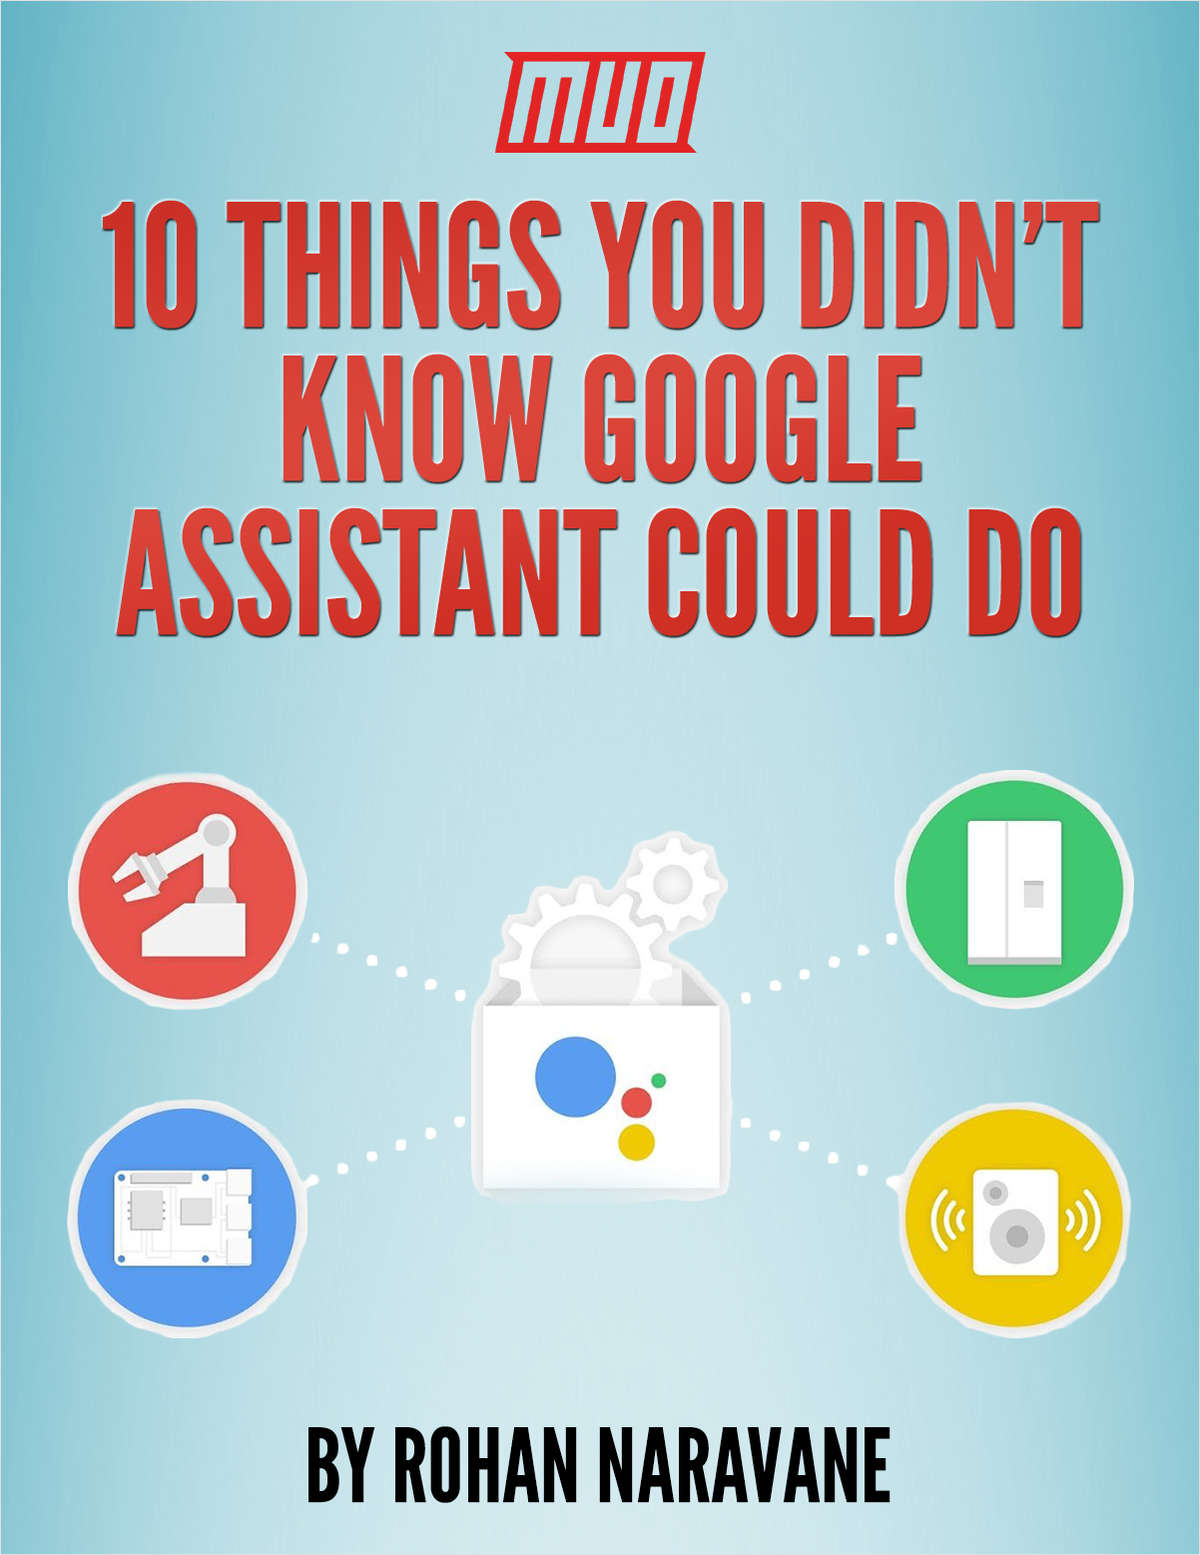 10 Things You Didn't Know Google Assistant Could Do